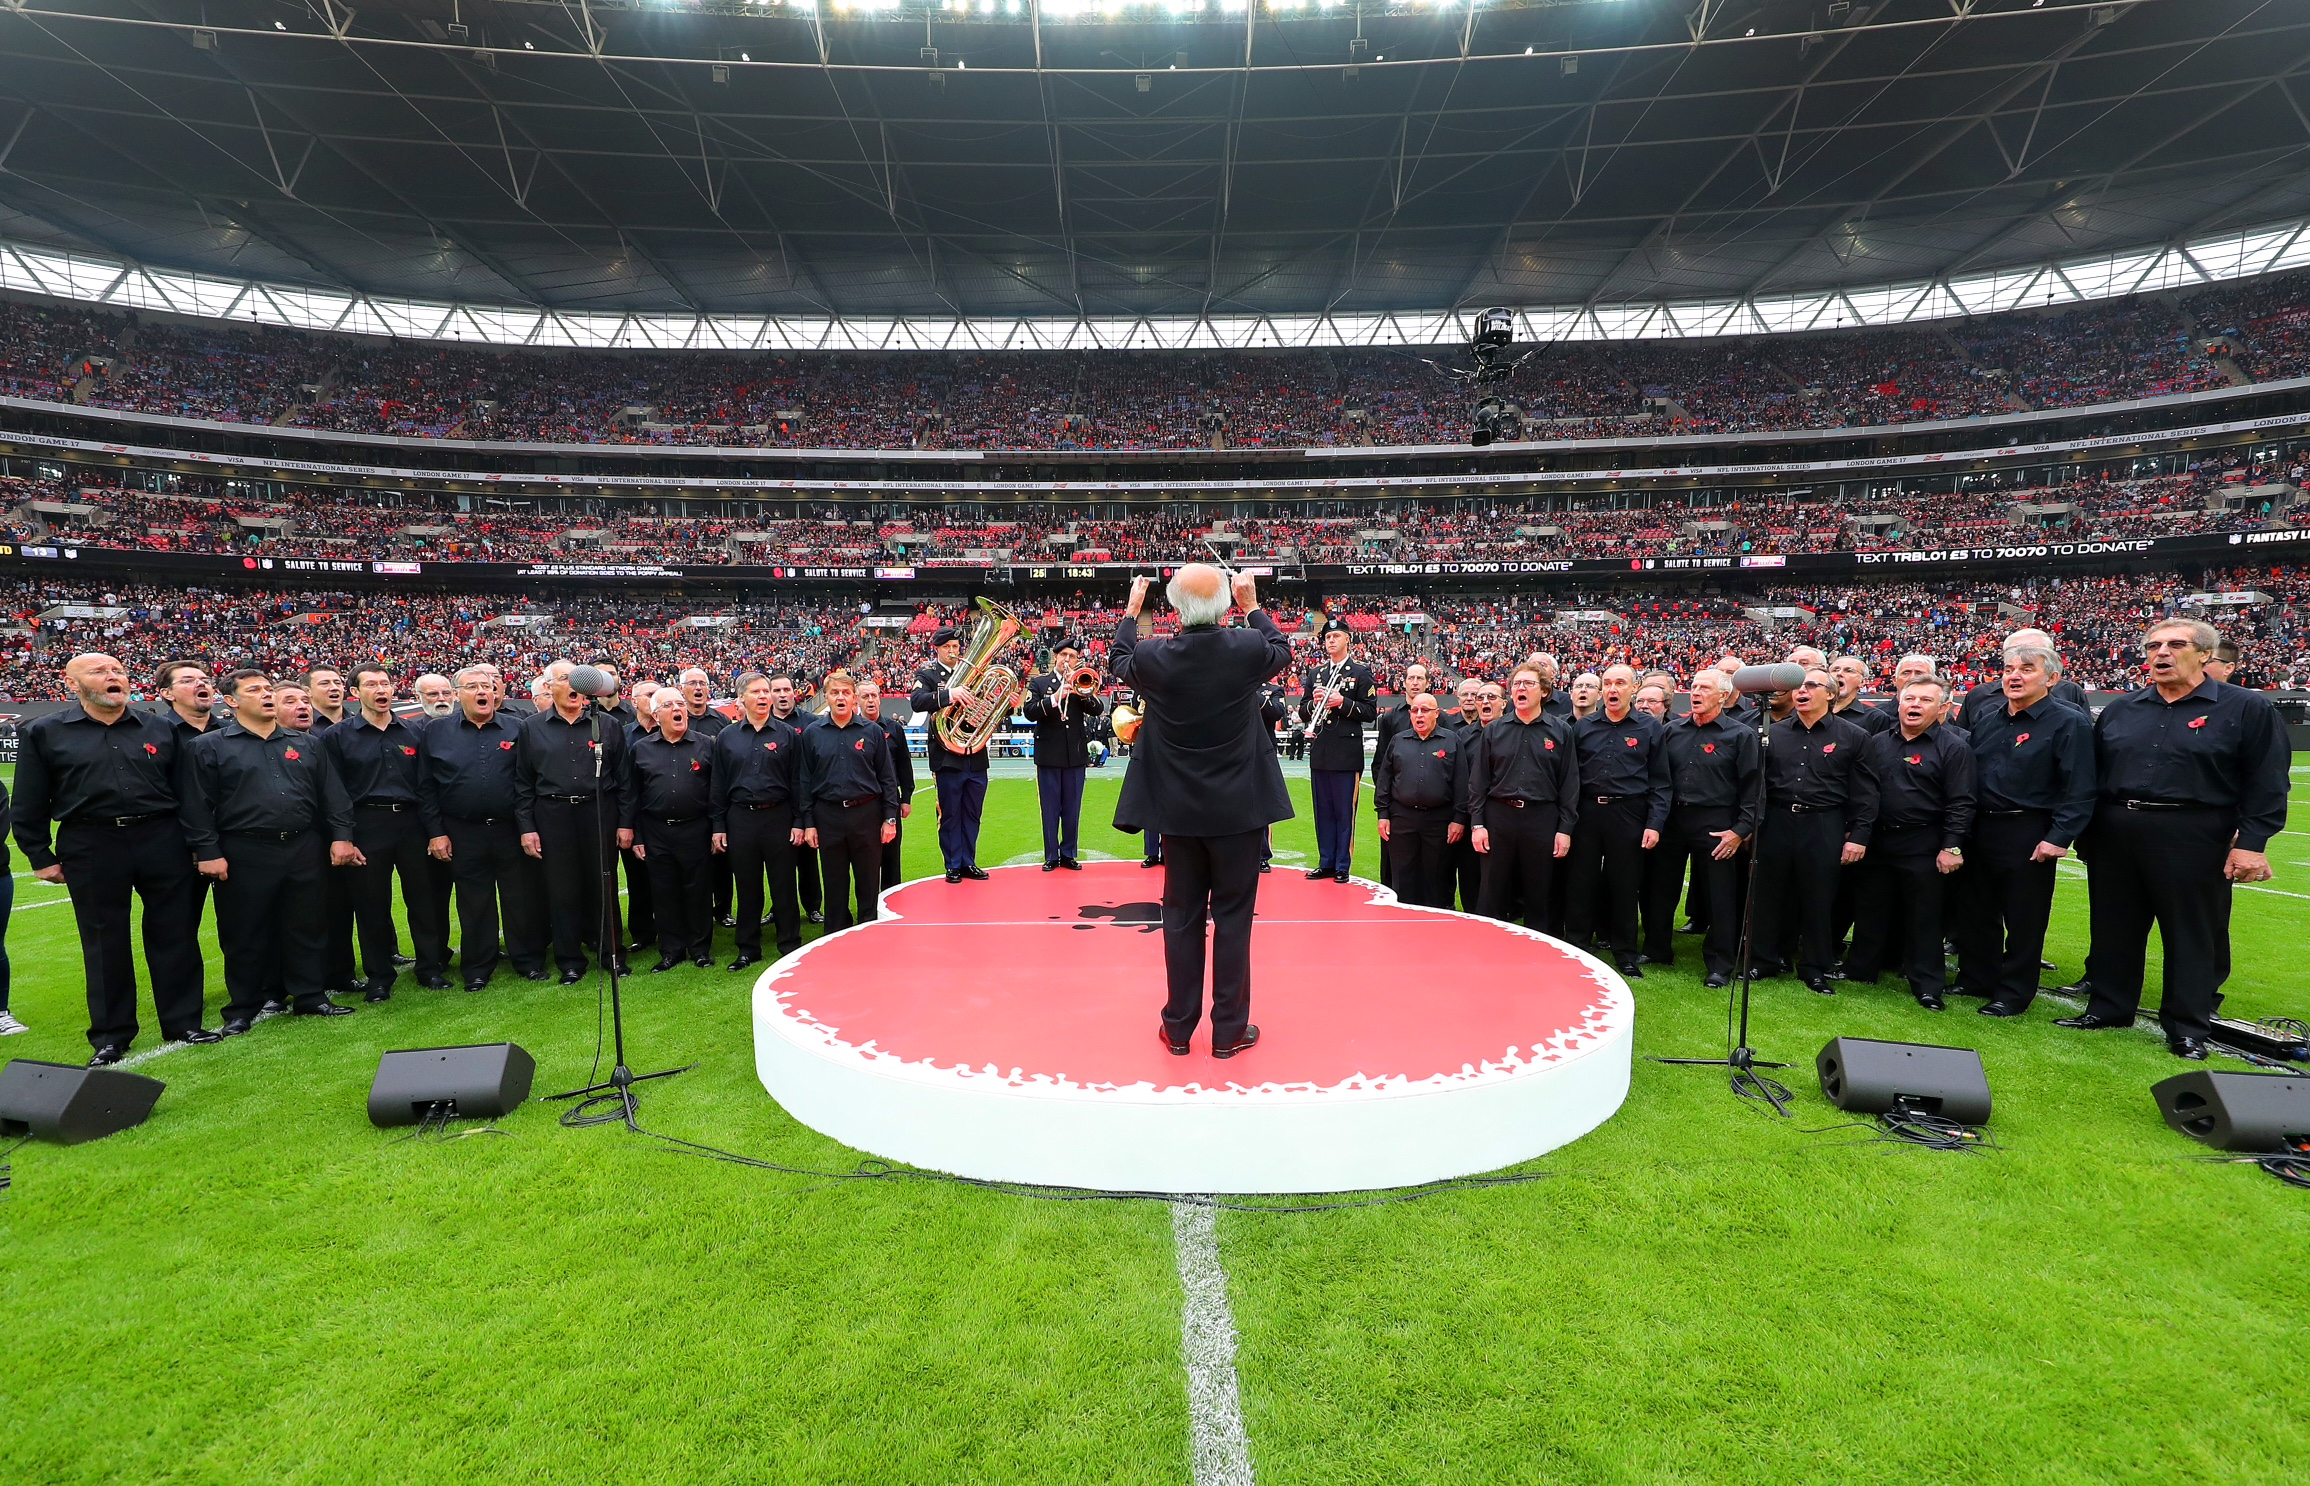 We've even sang on the turf, in front of 42,000 people at Wembley